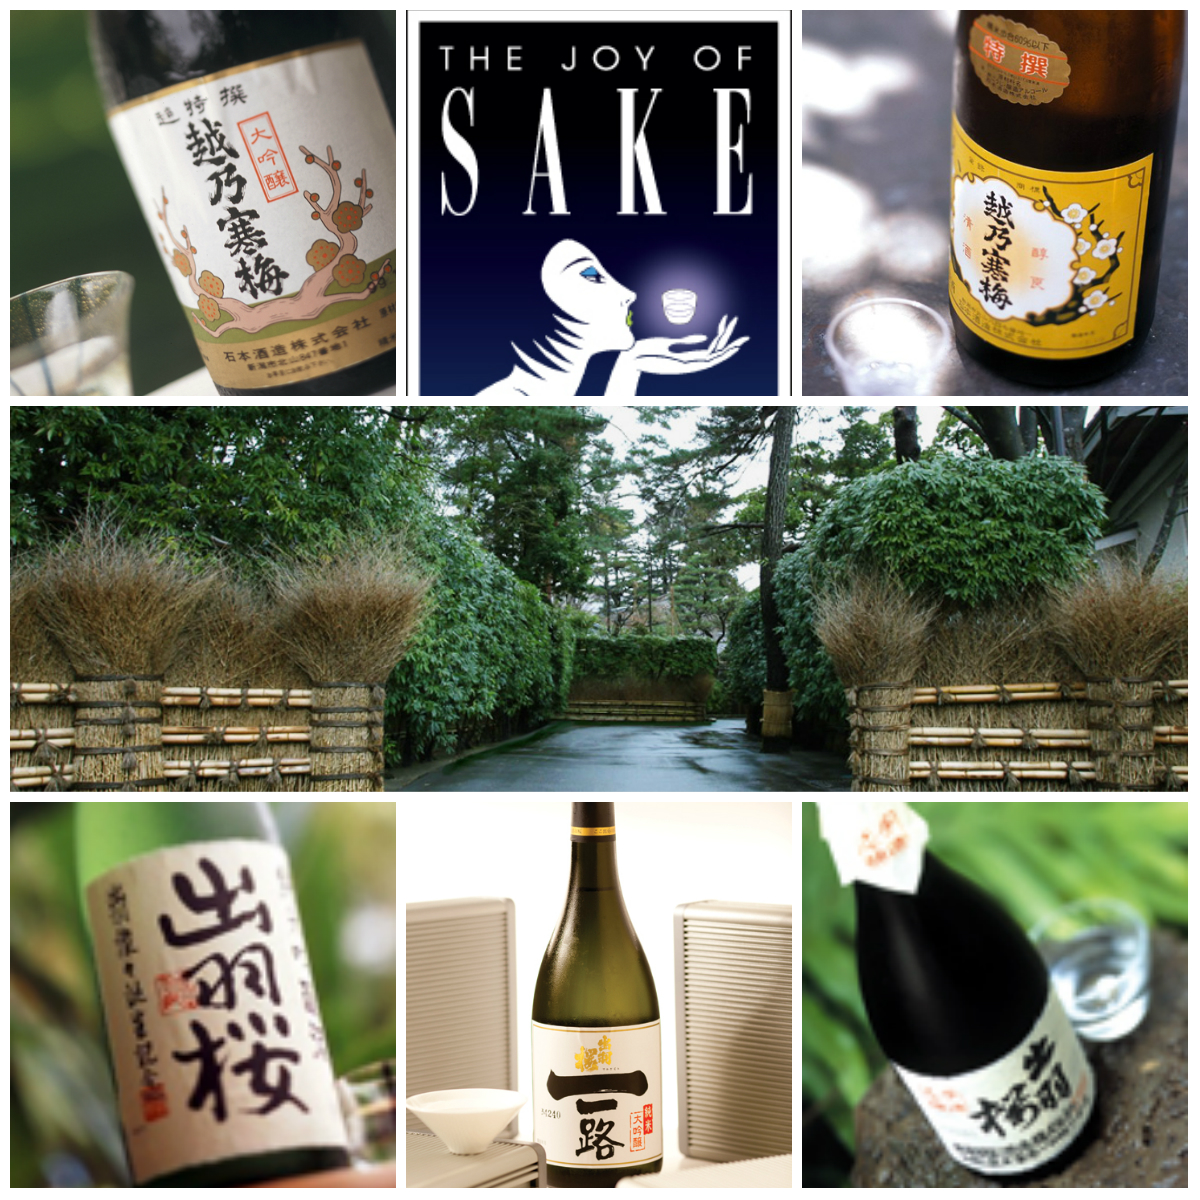 2014 Joy of Sake Gold Award Winners Sake Tasting